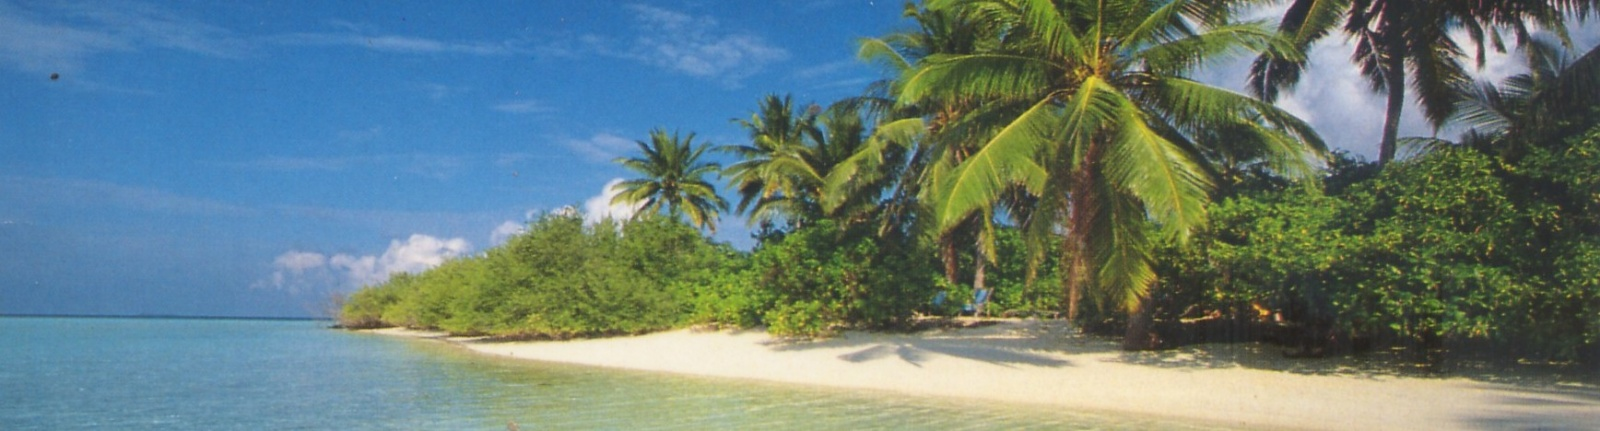 Click image for larger version  Name:Richard's house Rawai Beach.jpg Views:135 Size:218.1 KB ID:13536